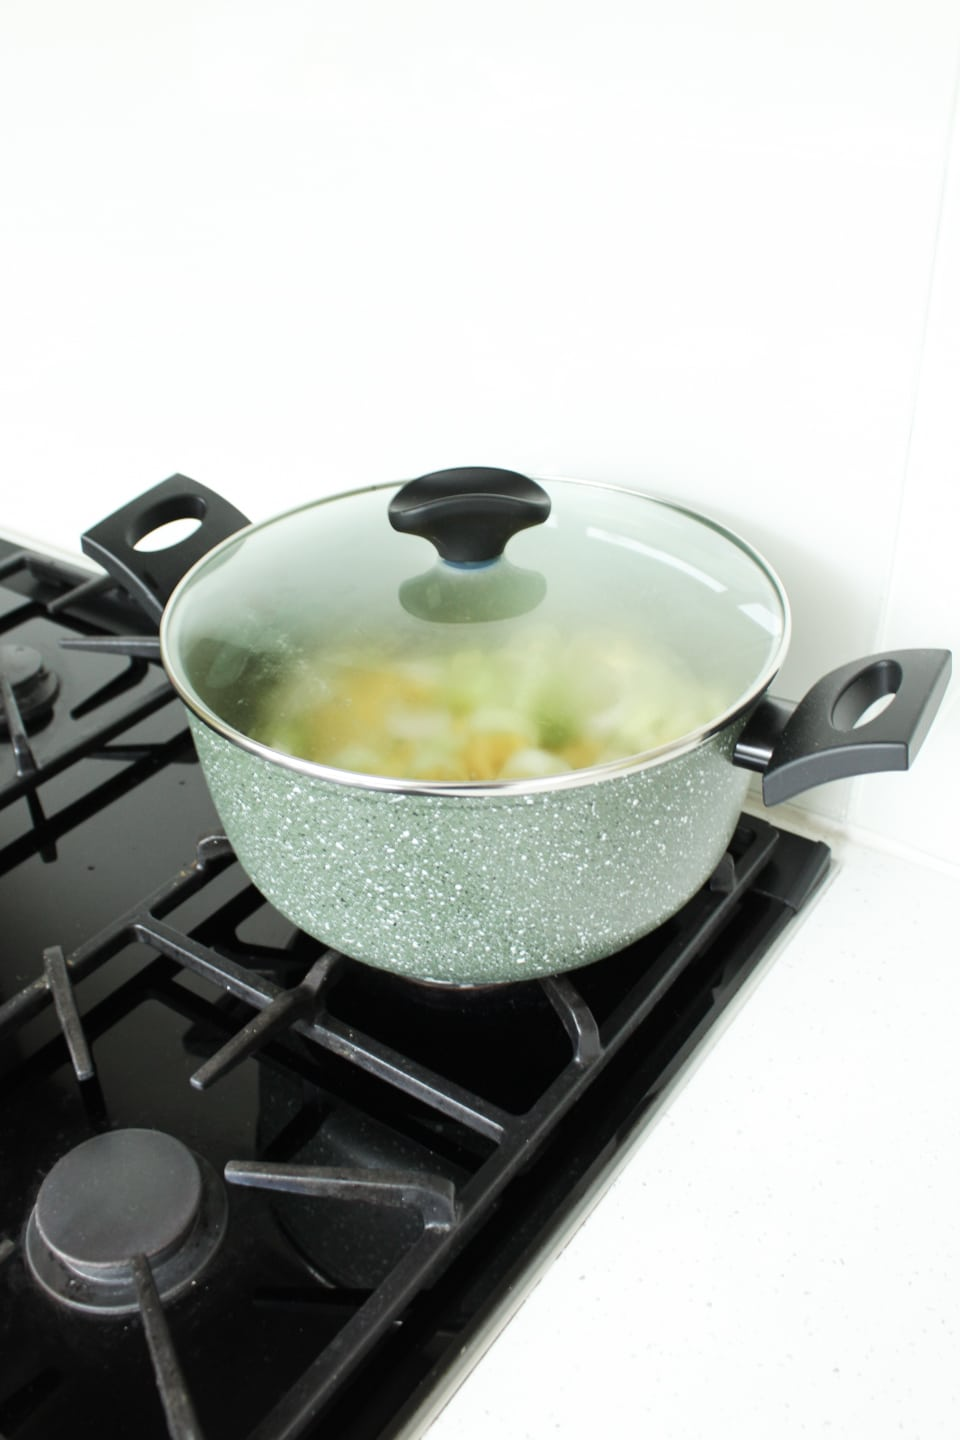 Steaming vegetables in Prestige Eco Cookware